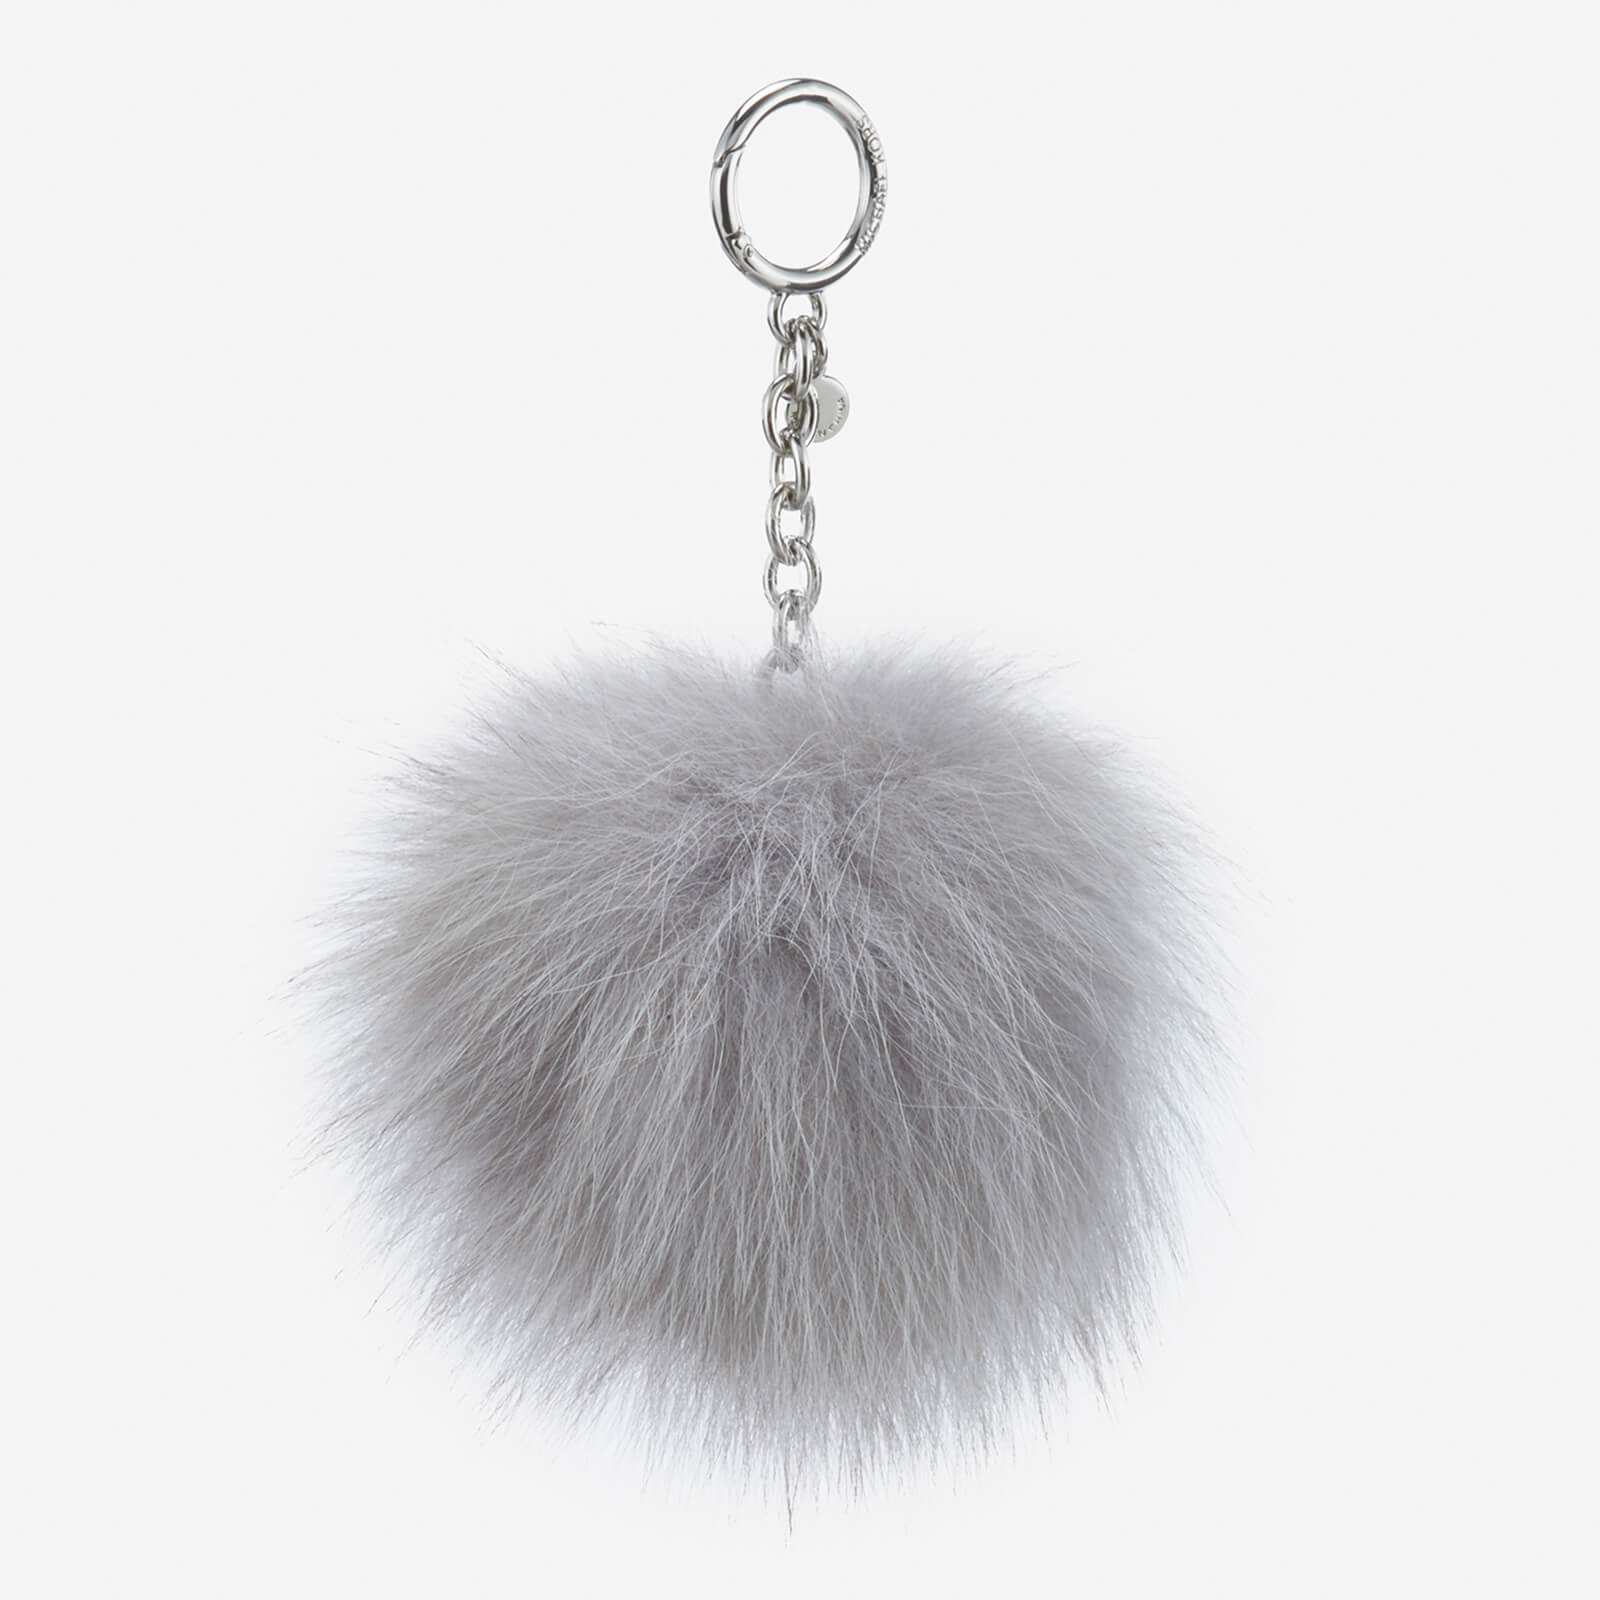 fc95dea13883 MICHAEL MICHAEL KORS Women s Large Fur Pom Pom - Silver - Free UK Delivery  over £50